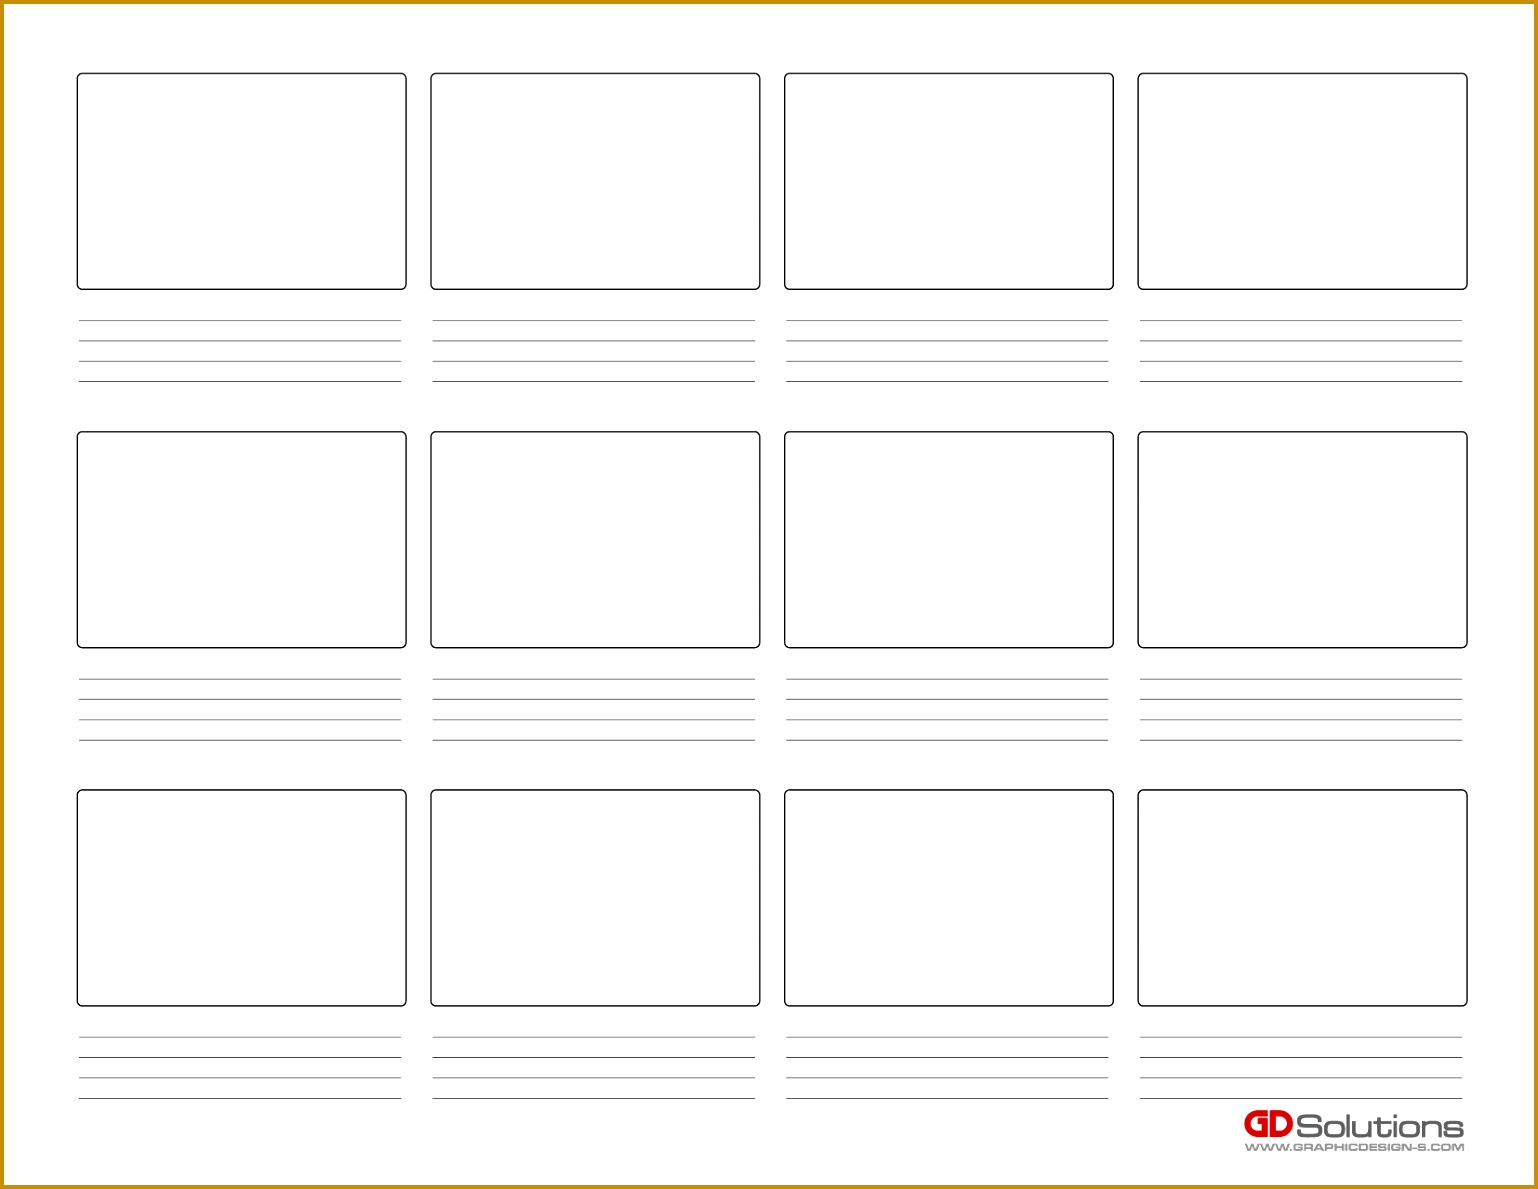 Business Storyboard Templates Sample Website Storyboard Business Storyboard Templates Sample Website Storyboard 11891538